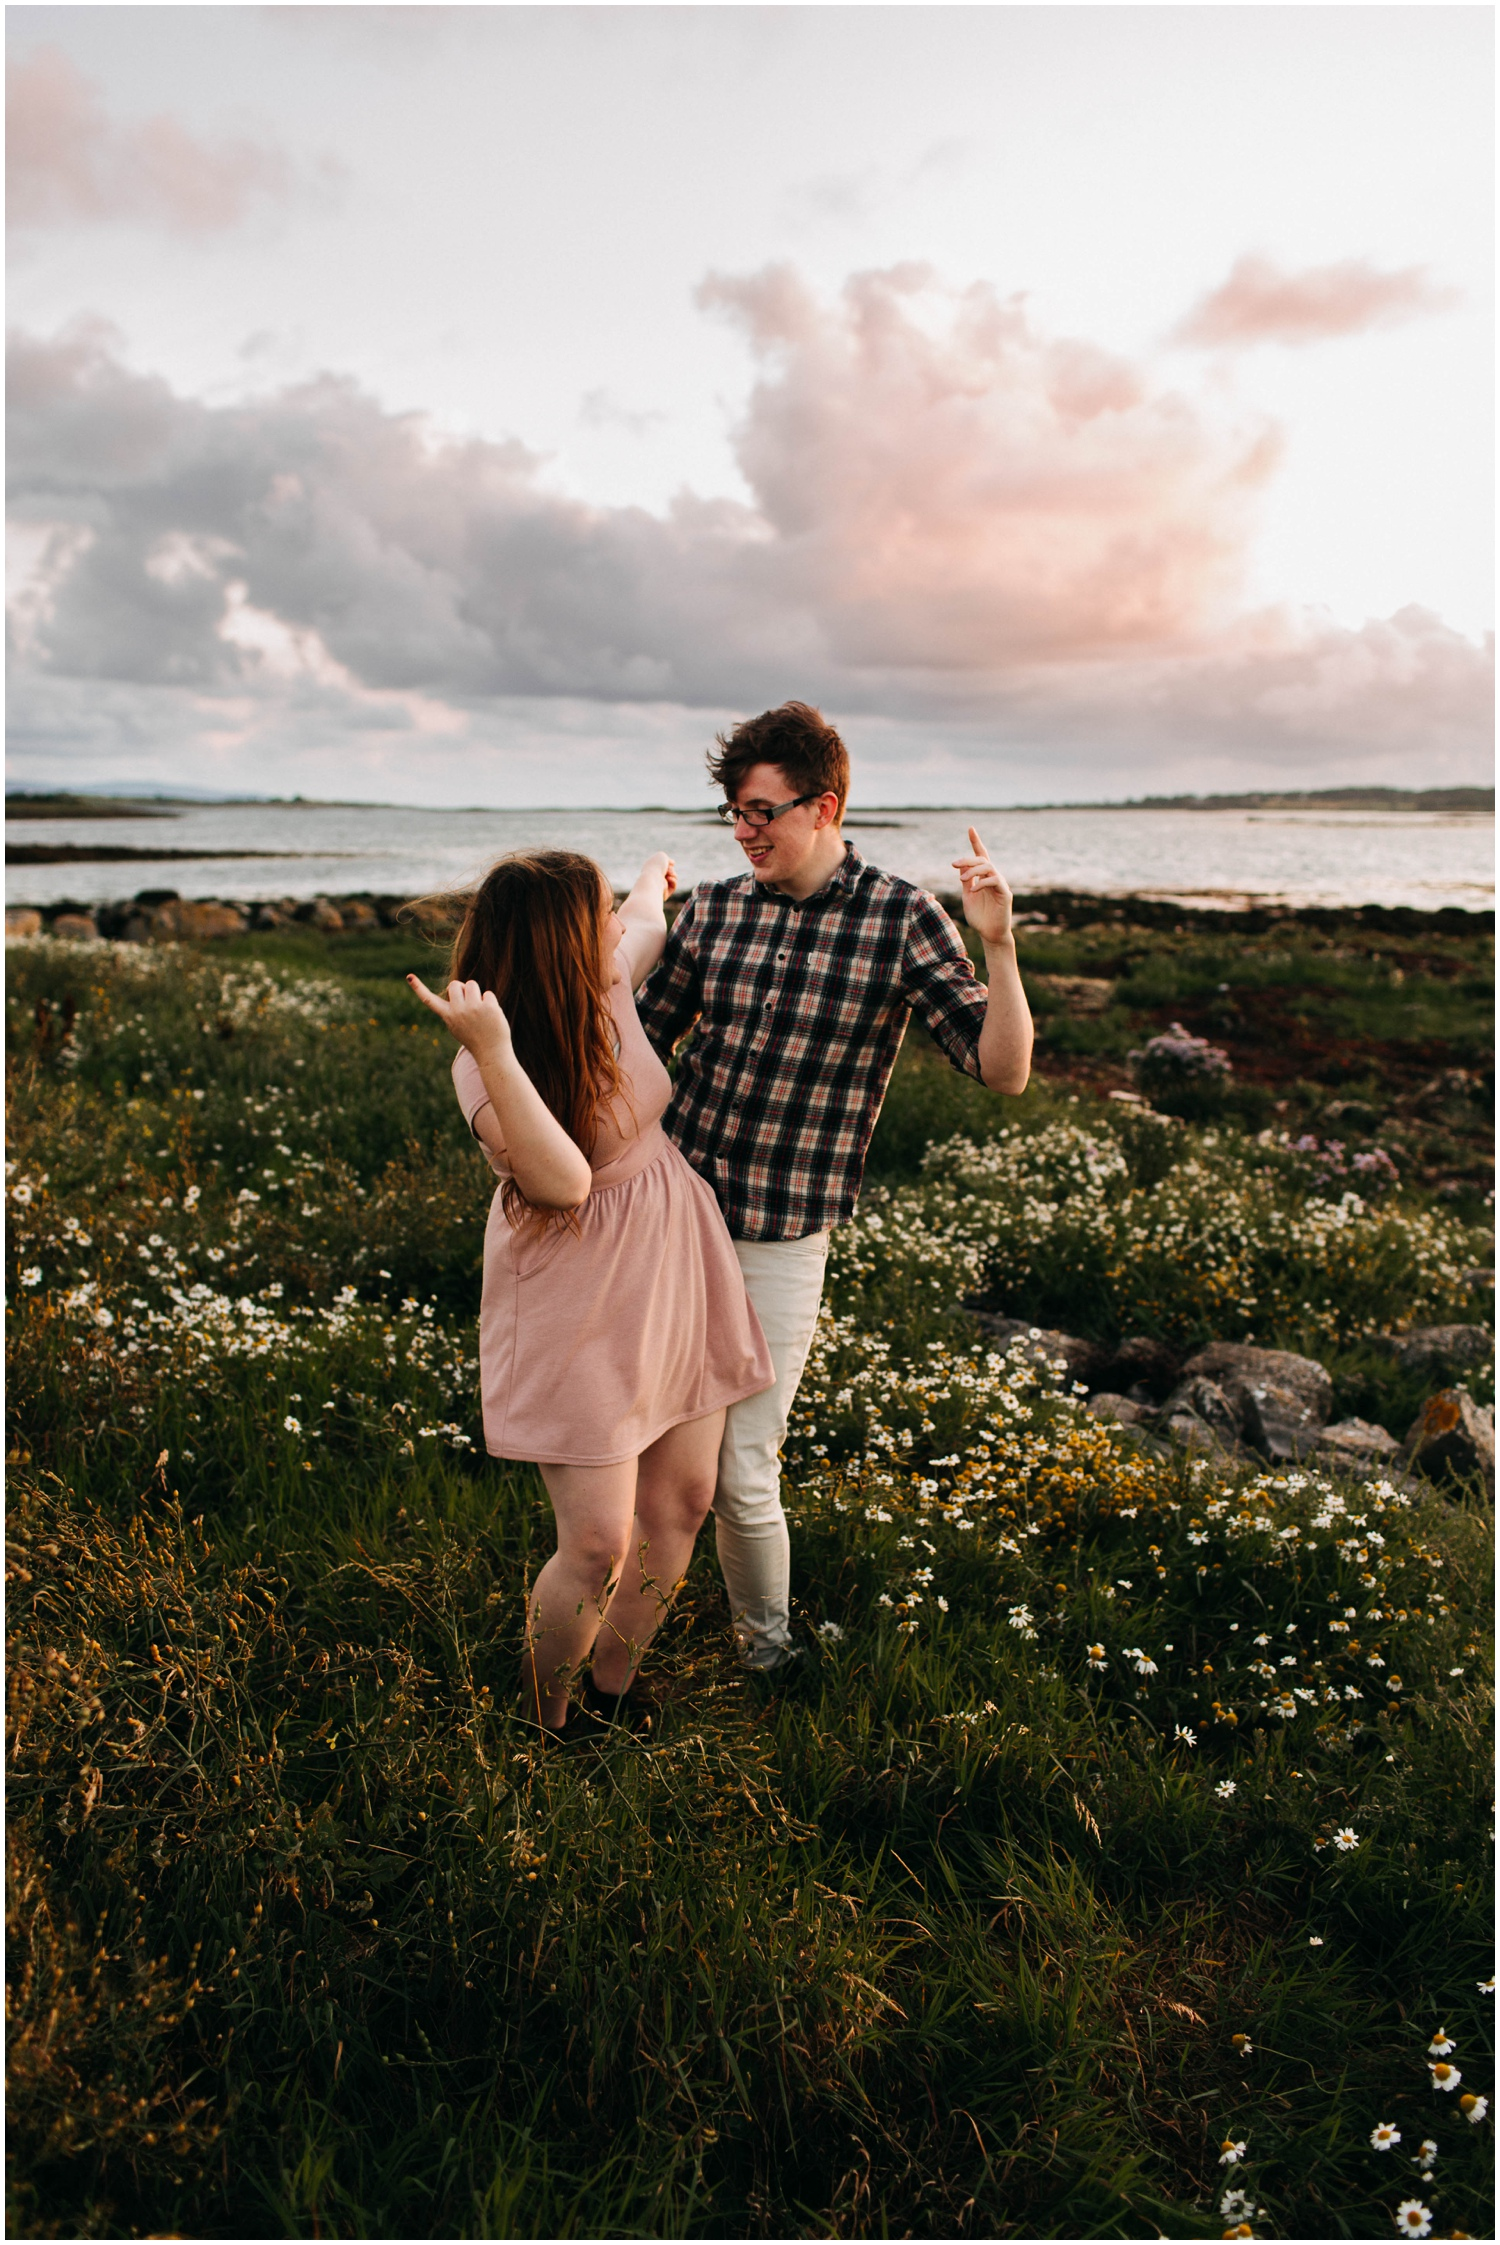 taylor_powers_best_of_2017_highlights_adventure_couple_photography_0218.jpg